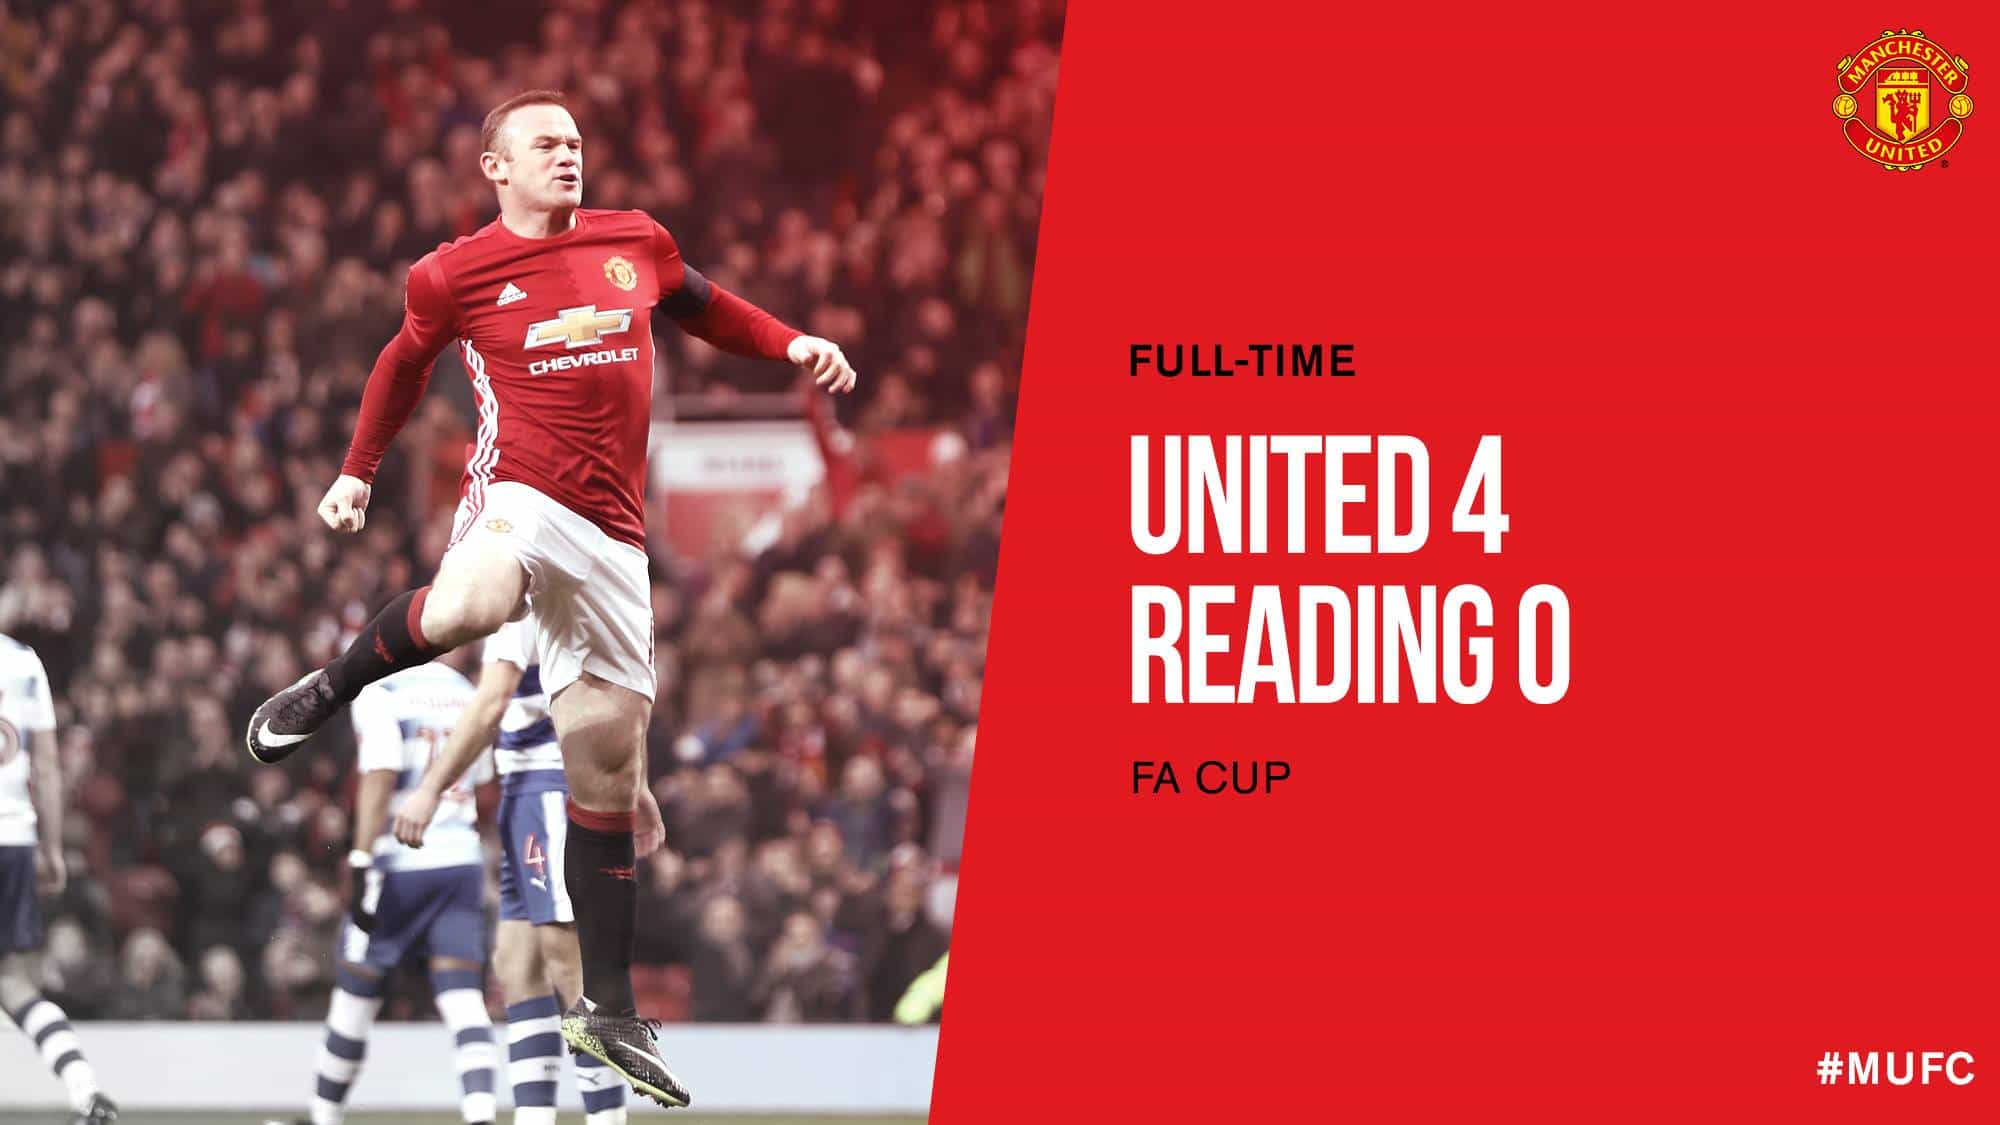 FA Cup: Manchester United – Reading (4:0)